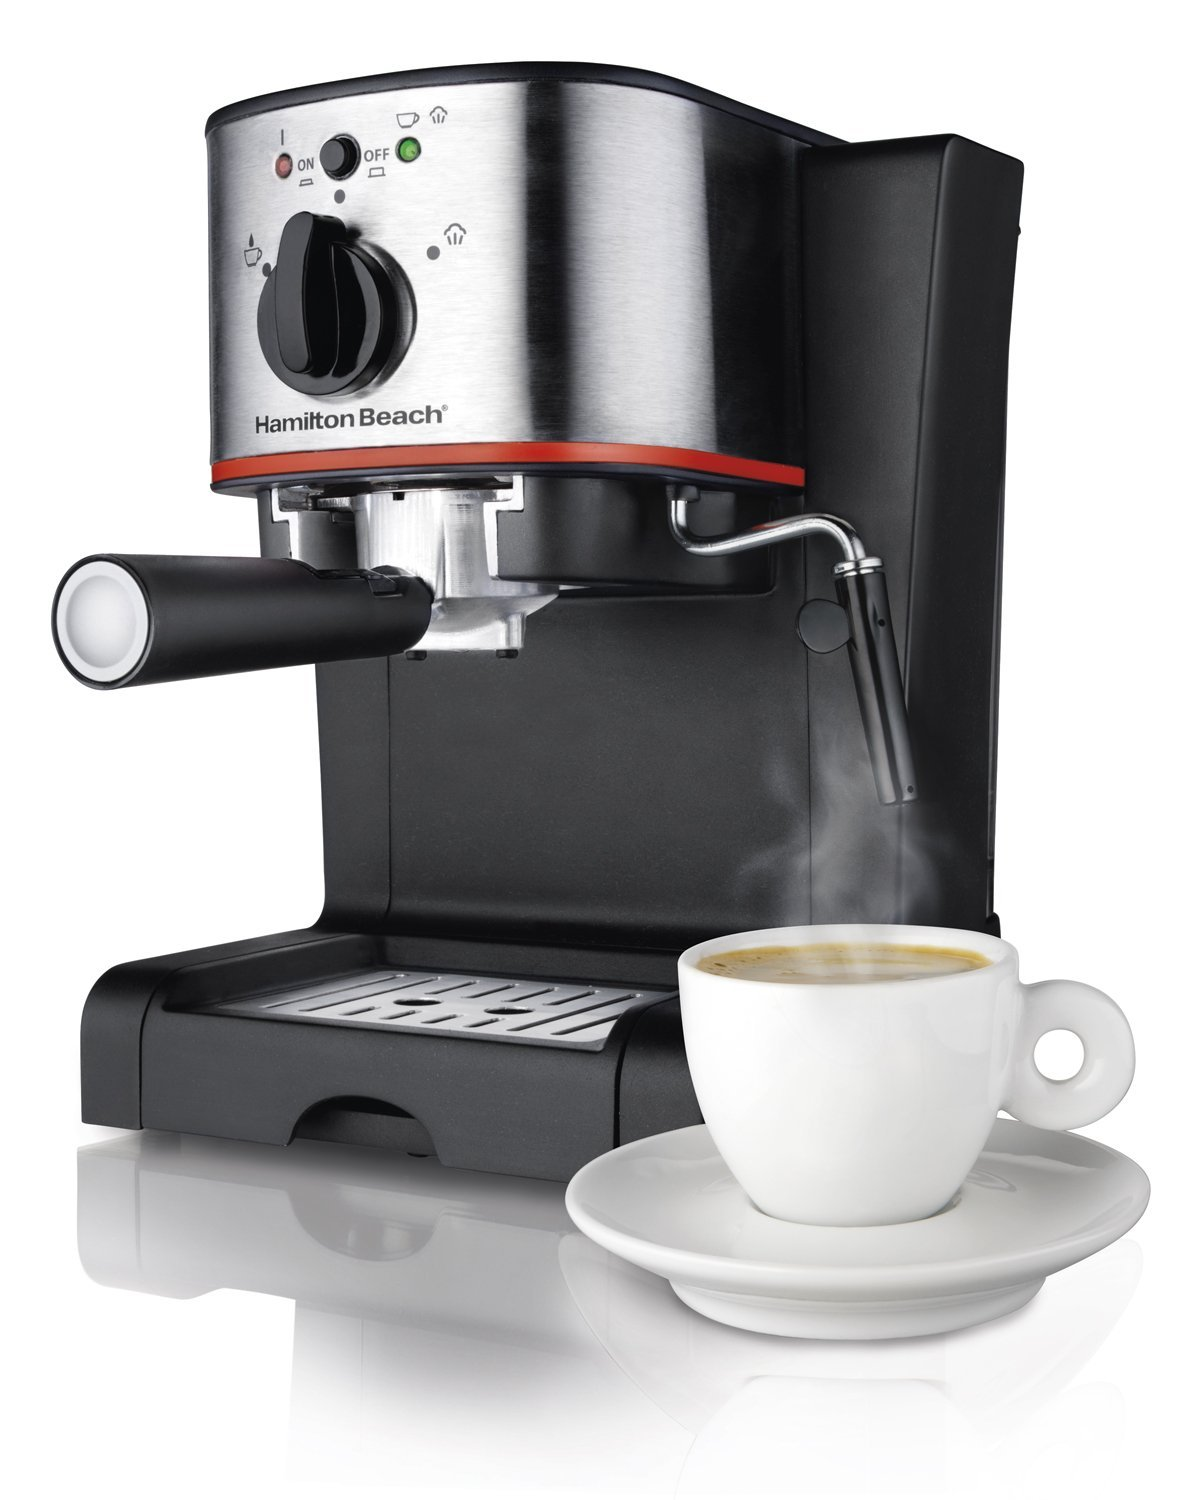 NEW! Hamilton Beach Cafe Espresso Coffee Maker Counter Top Steam Machine 15 Bar eBay